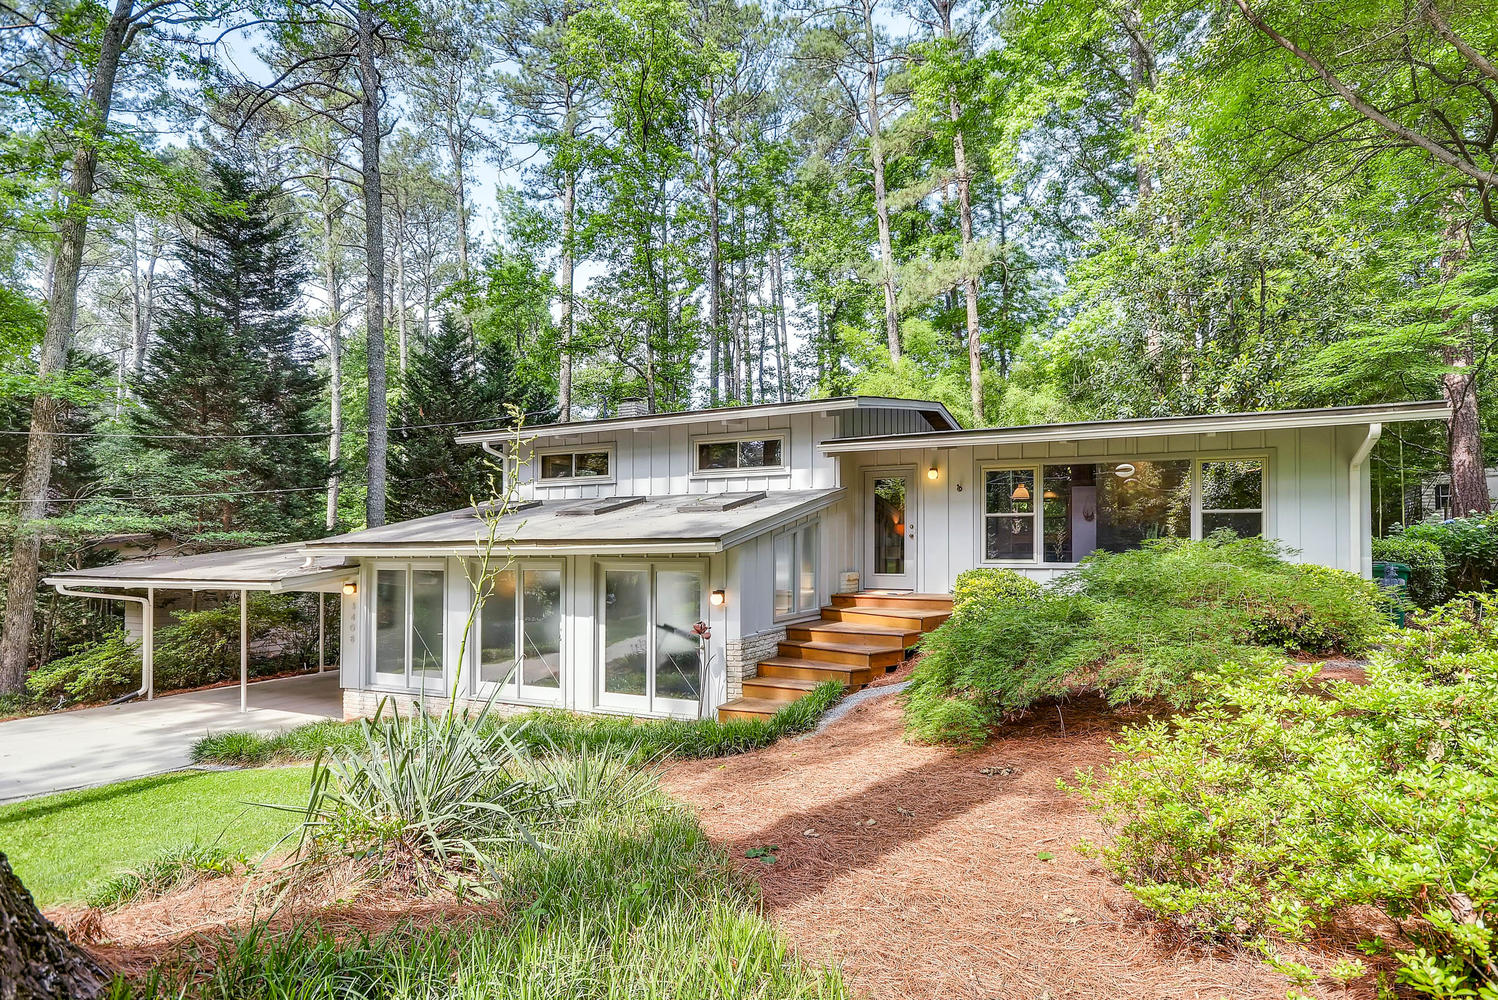 Atlanta mid century modern homes for sale archives Modern houses in atlanta